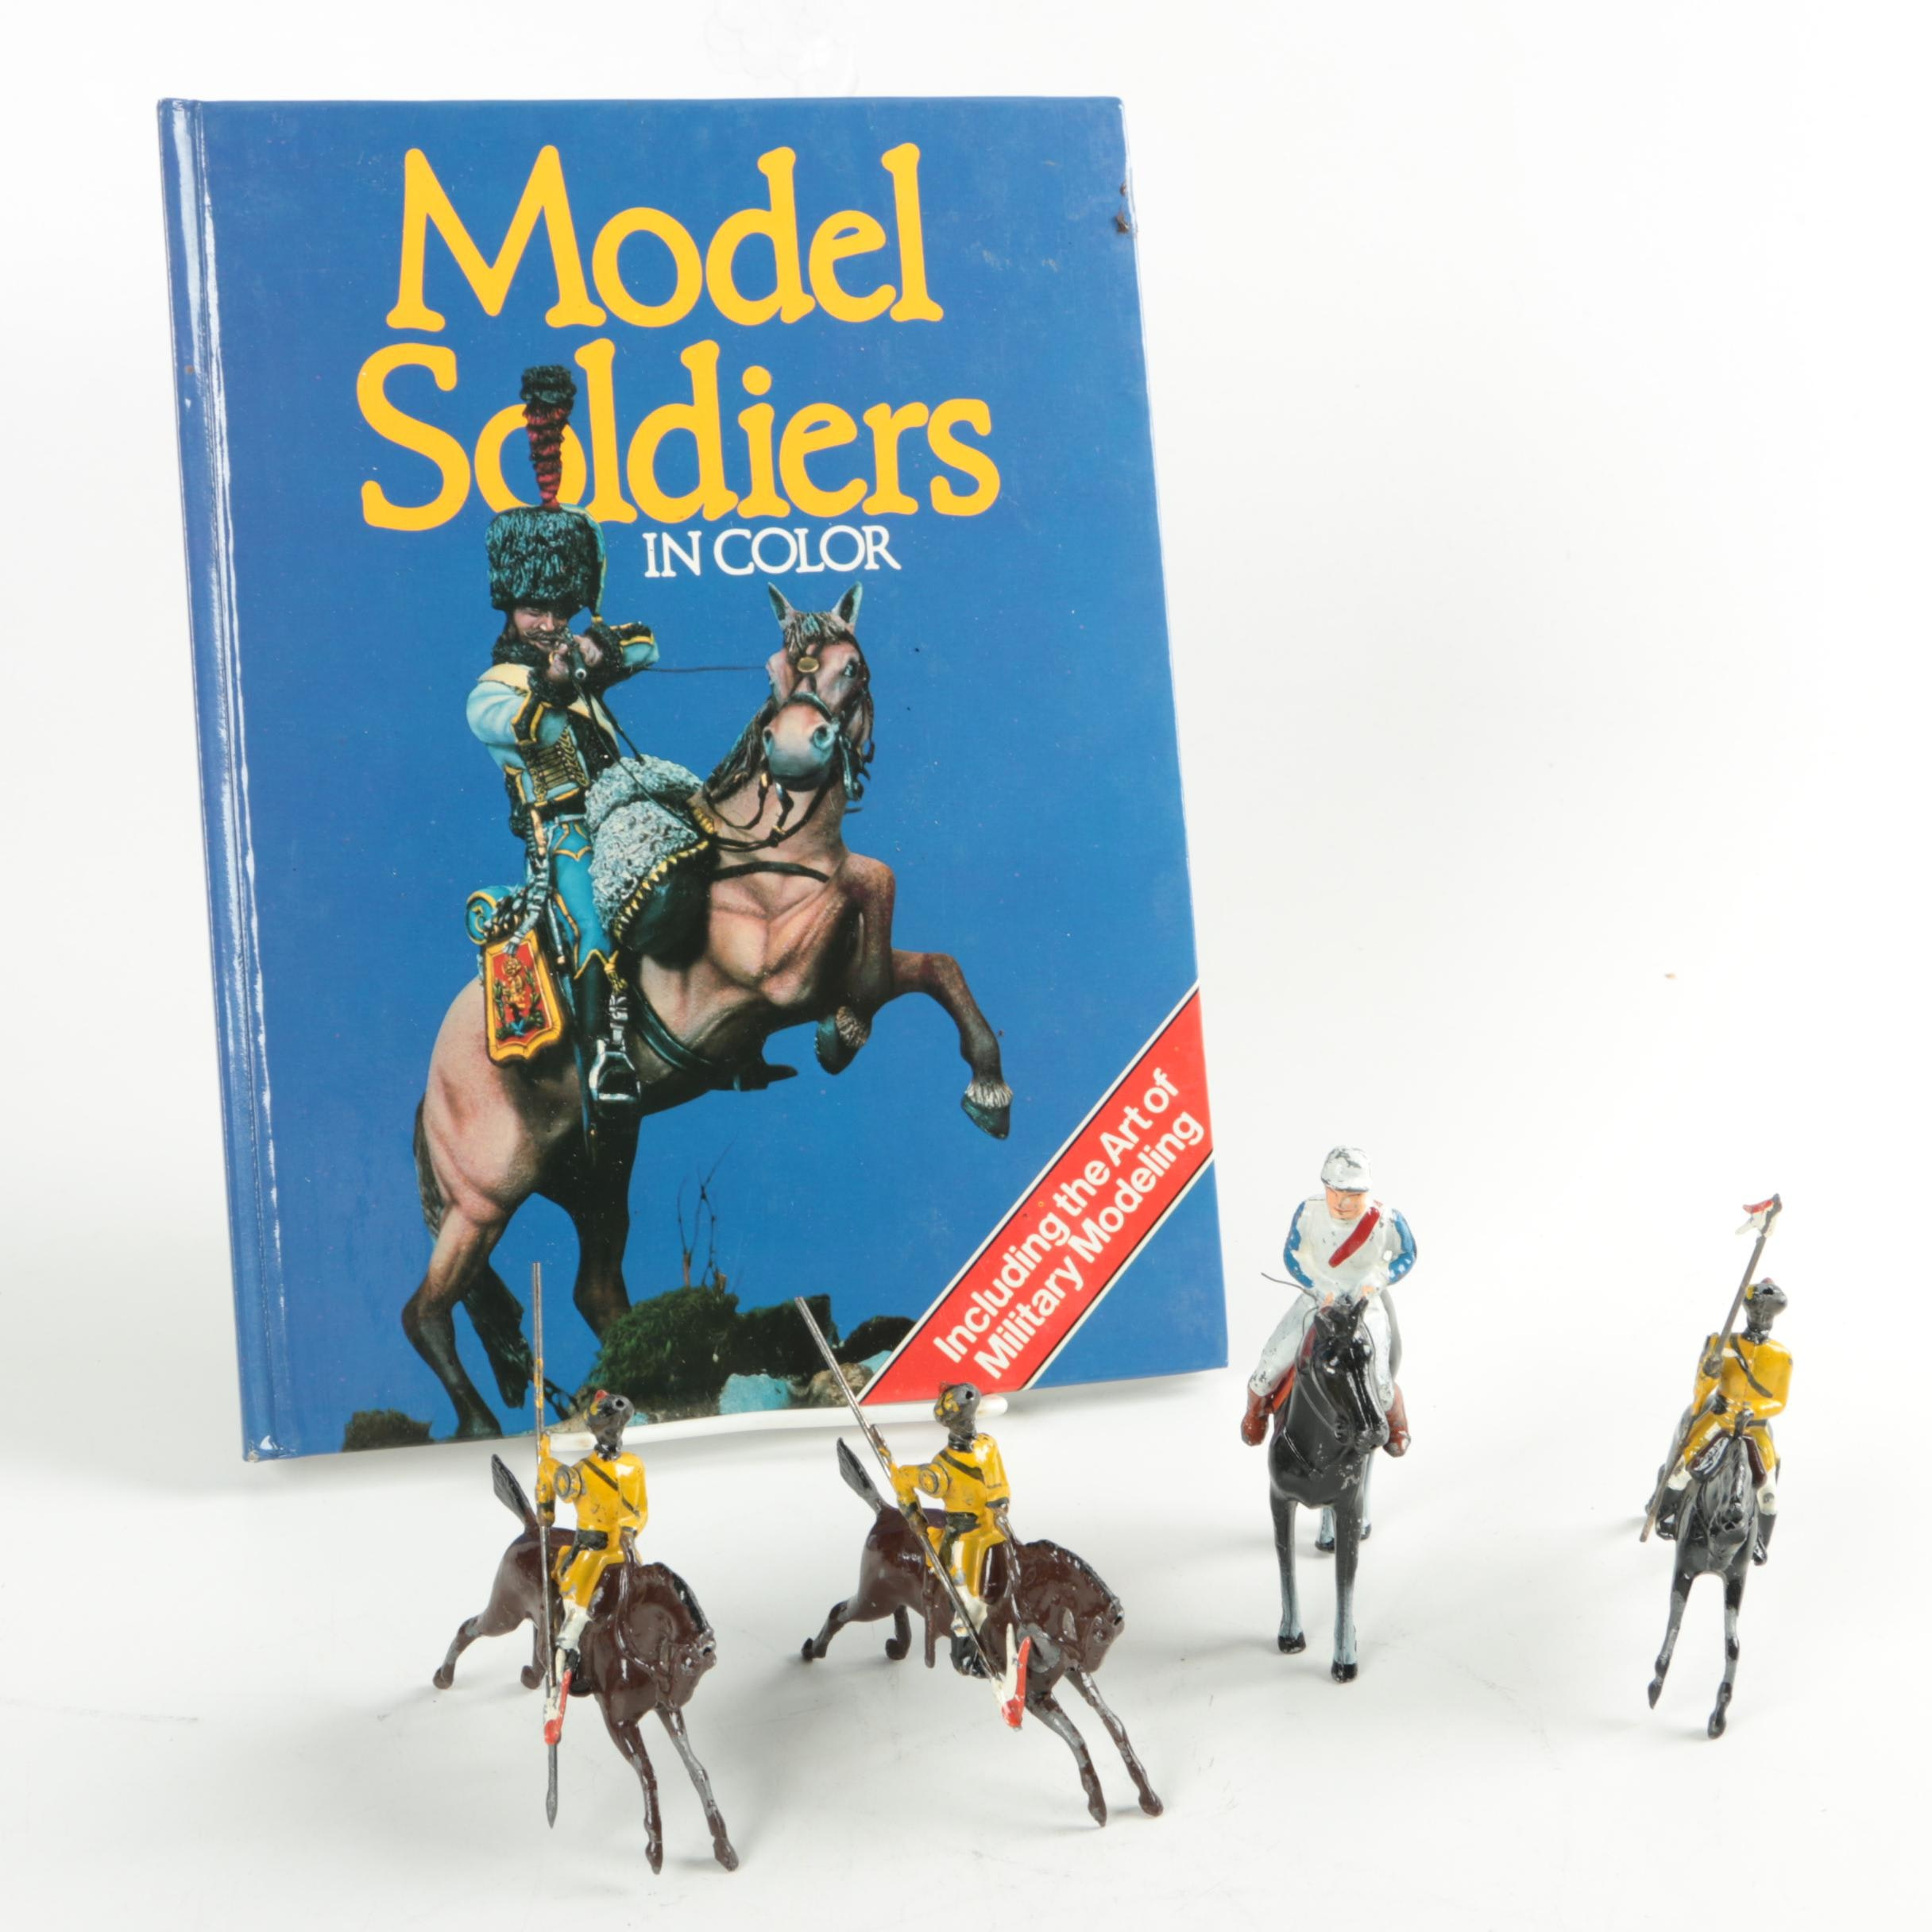 Model Cavalry Soldiers with Guidebook